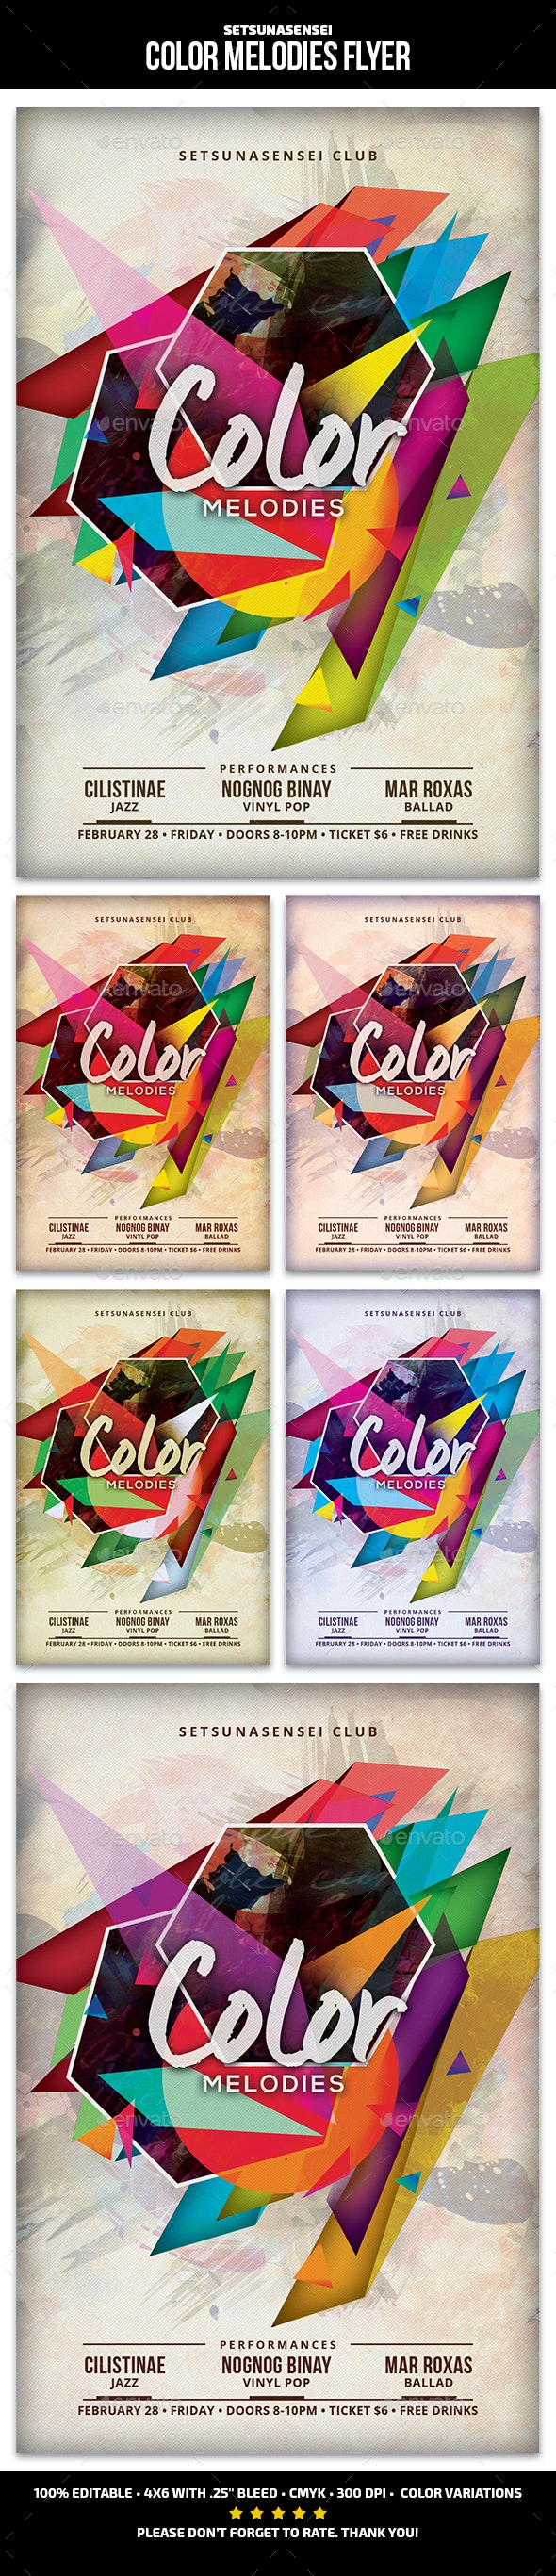 Color Melodies Flyer - Clubs & Parties Events